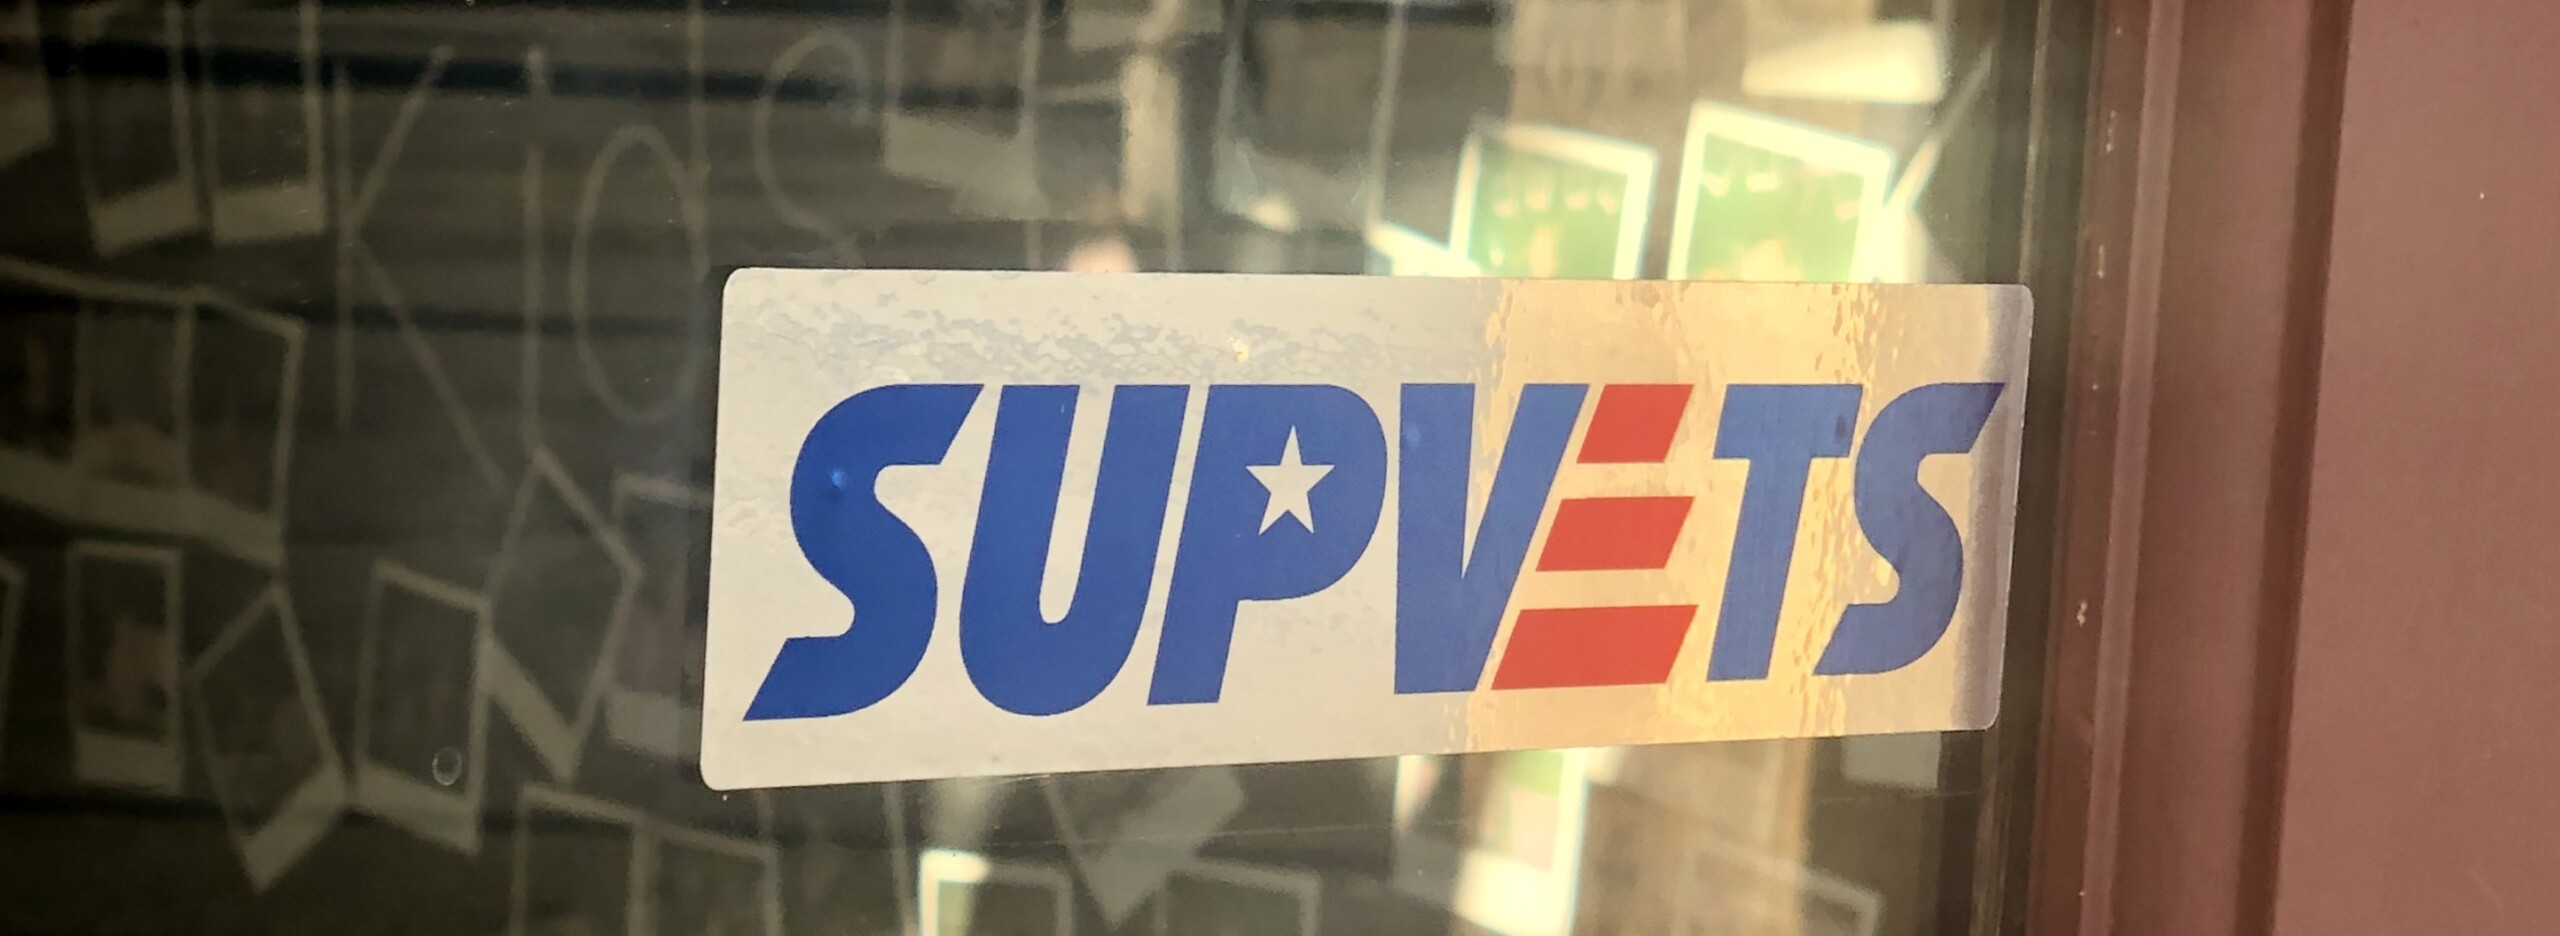 SUPVETS Business Decal